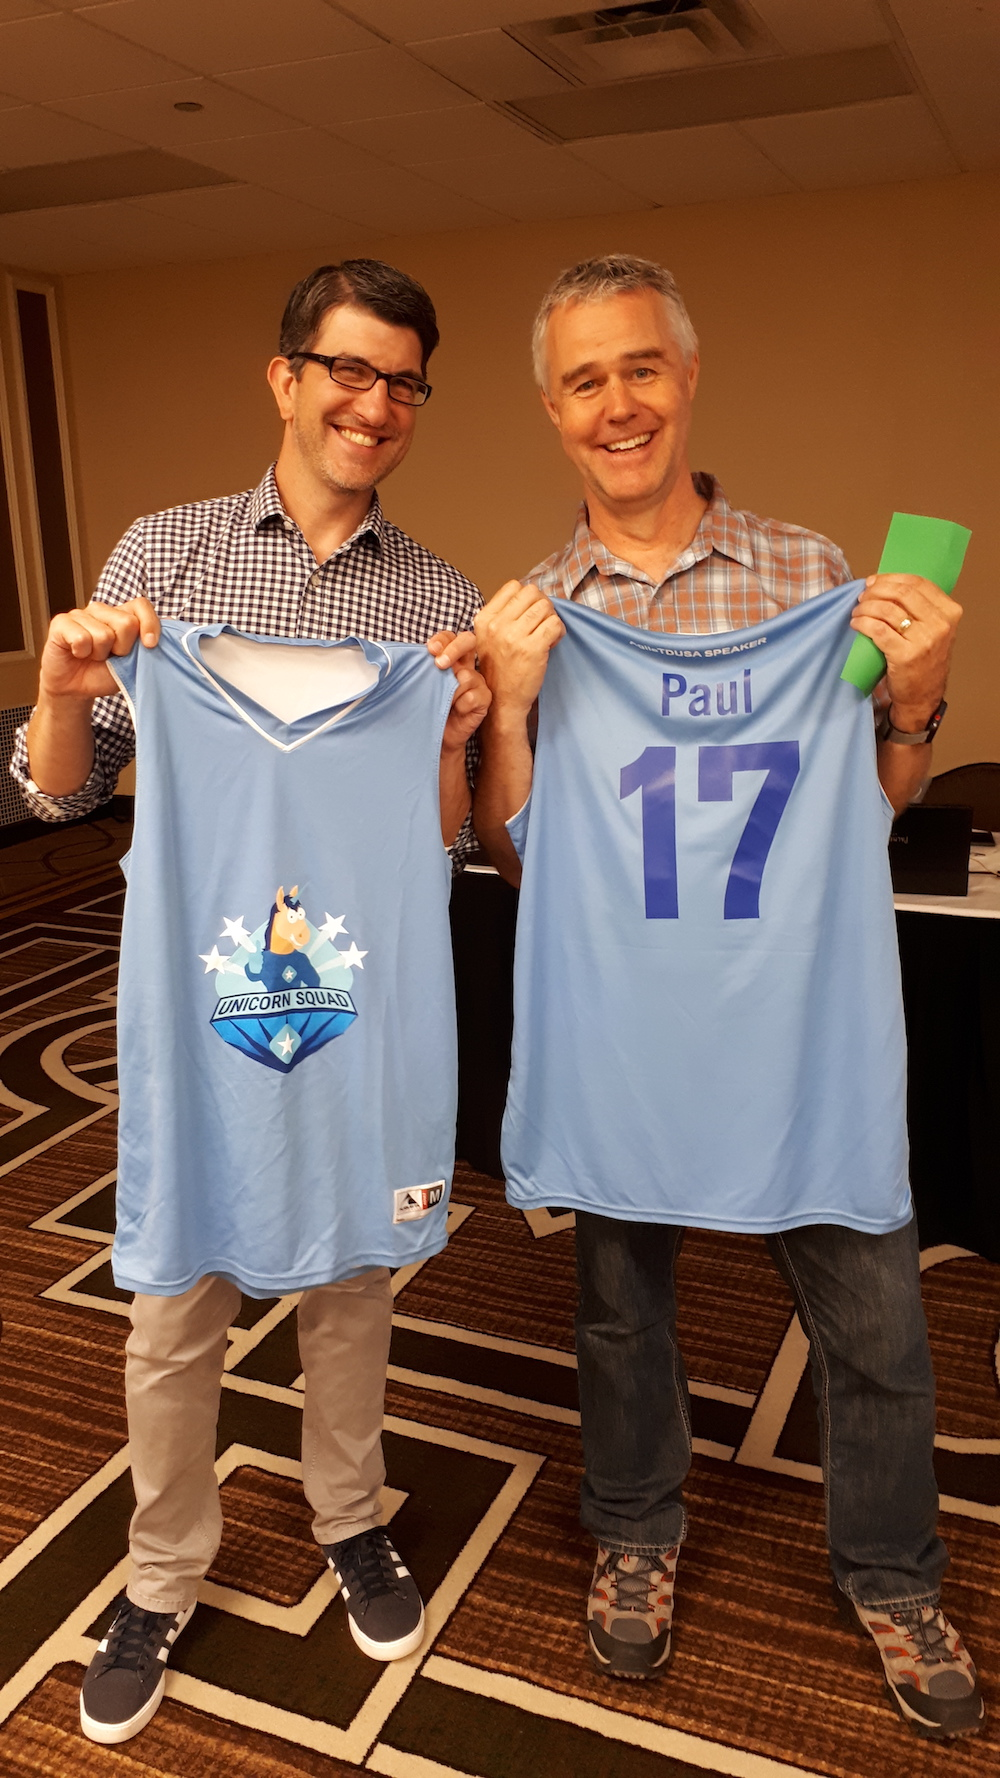 Speakers Damian Synadinos and Paul Holland happy about their speaker gift at Agile Testing Days USA 2019